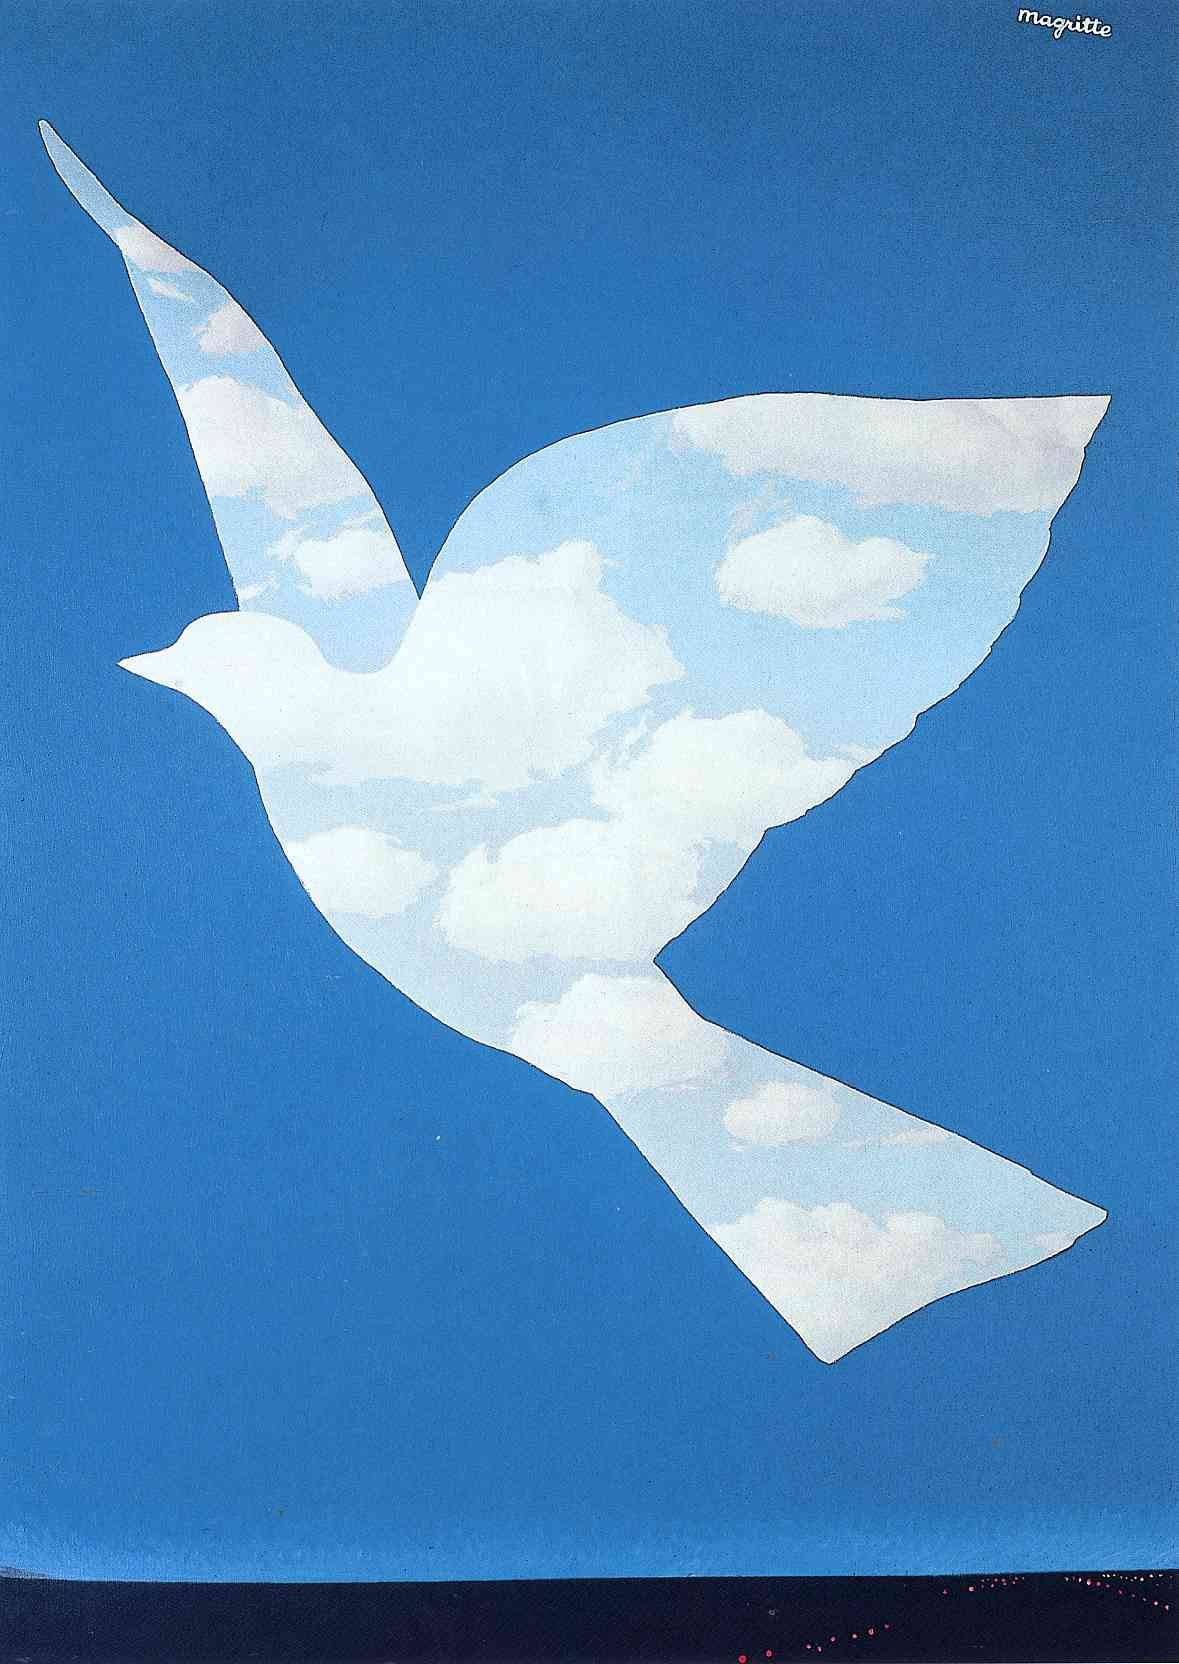 The promise, 1966 Rene Magritte